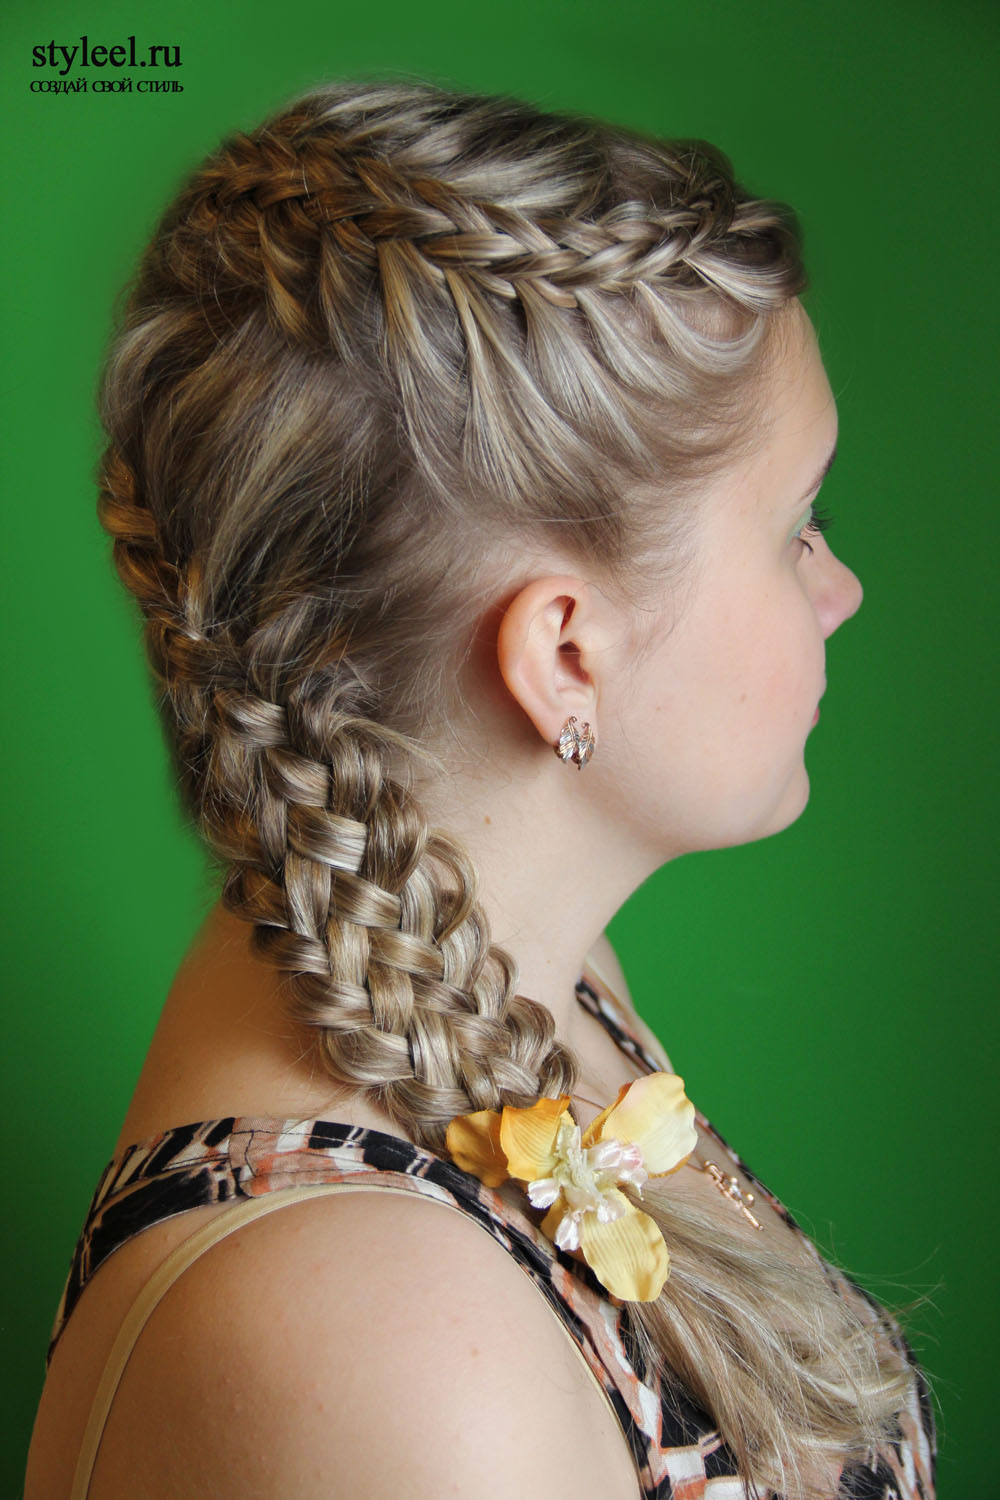 Local fashion: Forty and one braid hairstyles